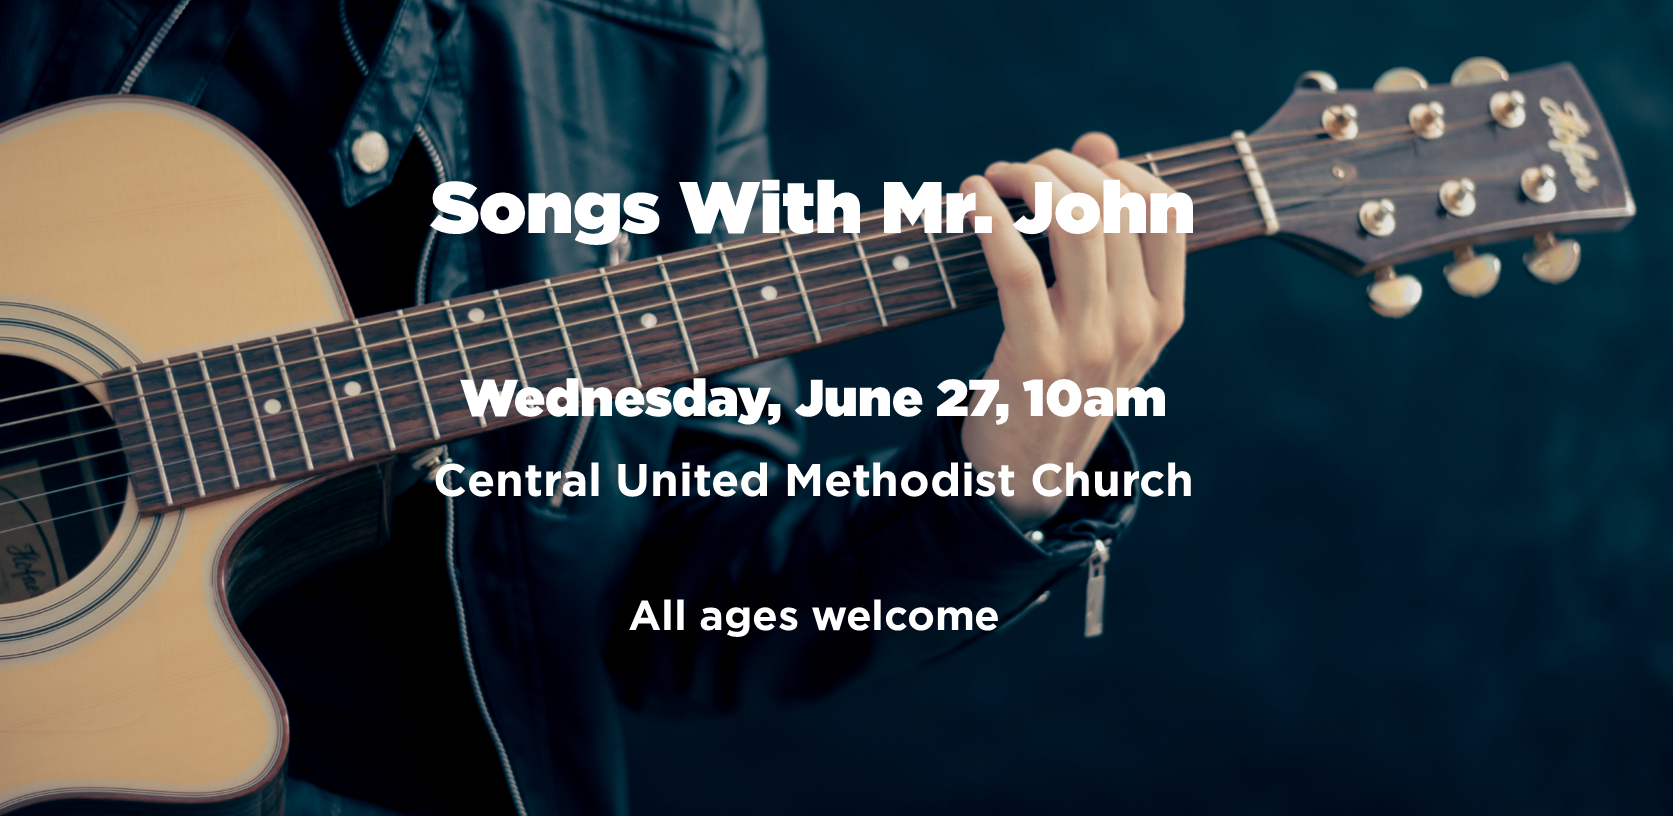 Songs With Mr. John